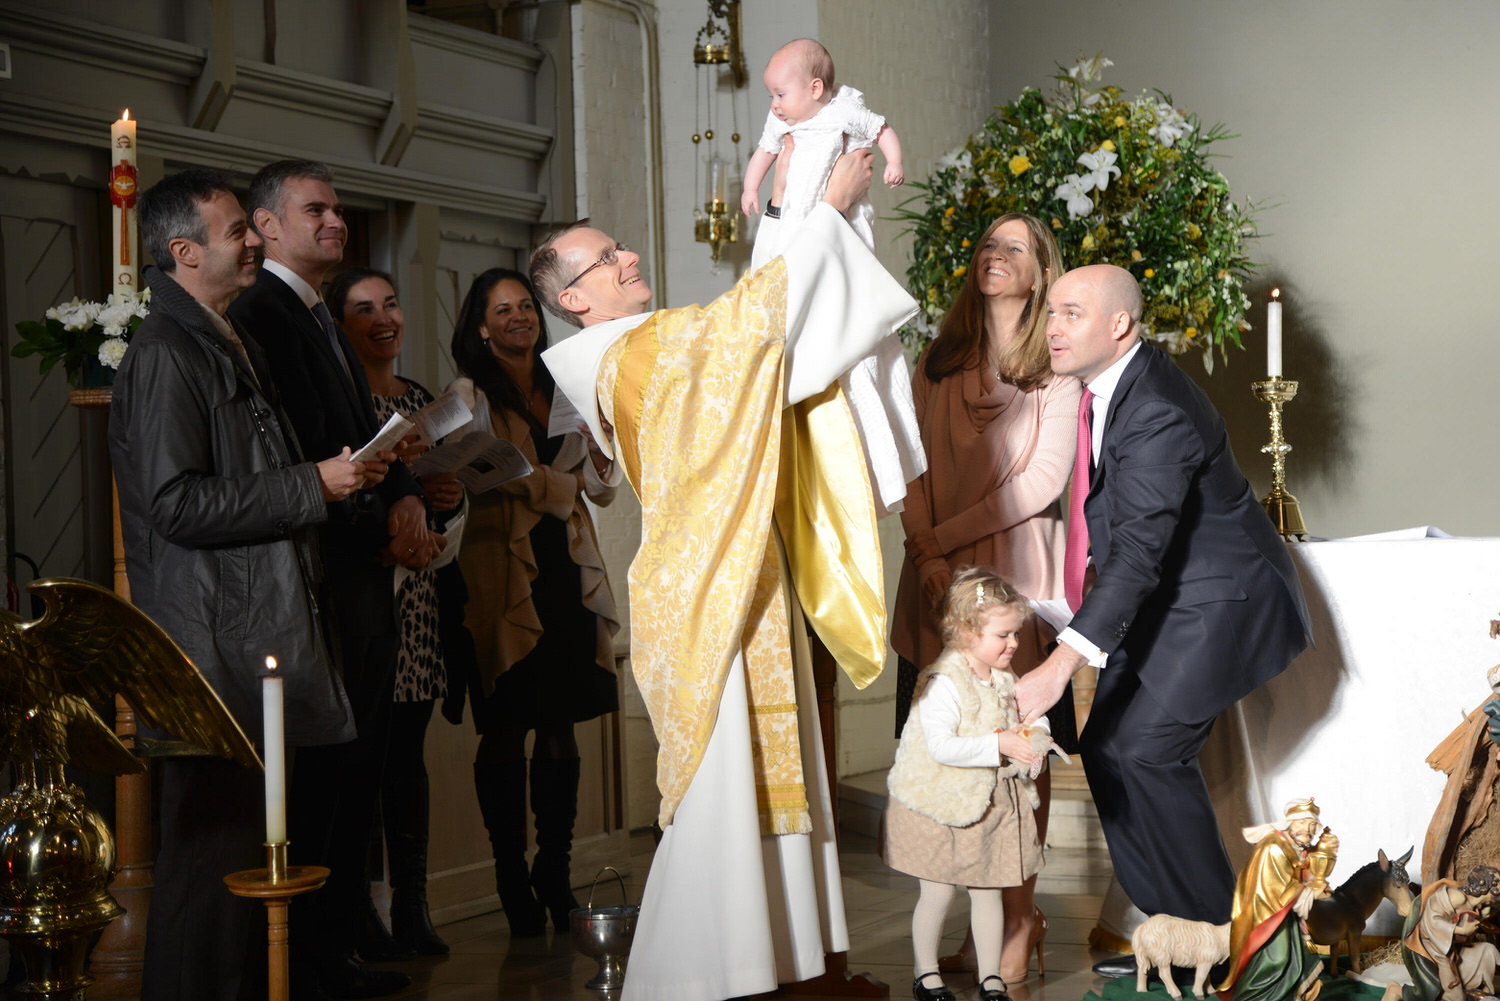 United-Benefice-of-Holland-Park-Church-Services-StG-StJ-Christening-Image-No-2.jpg